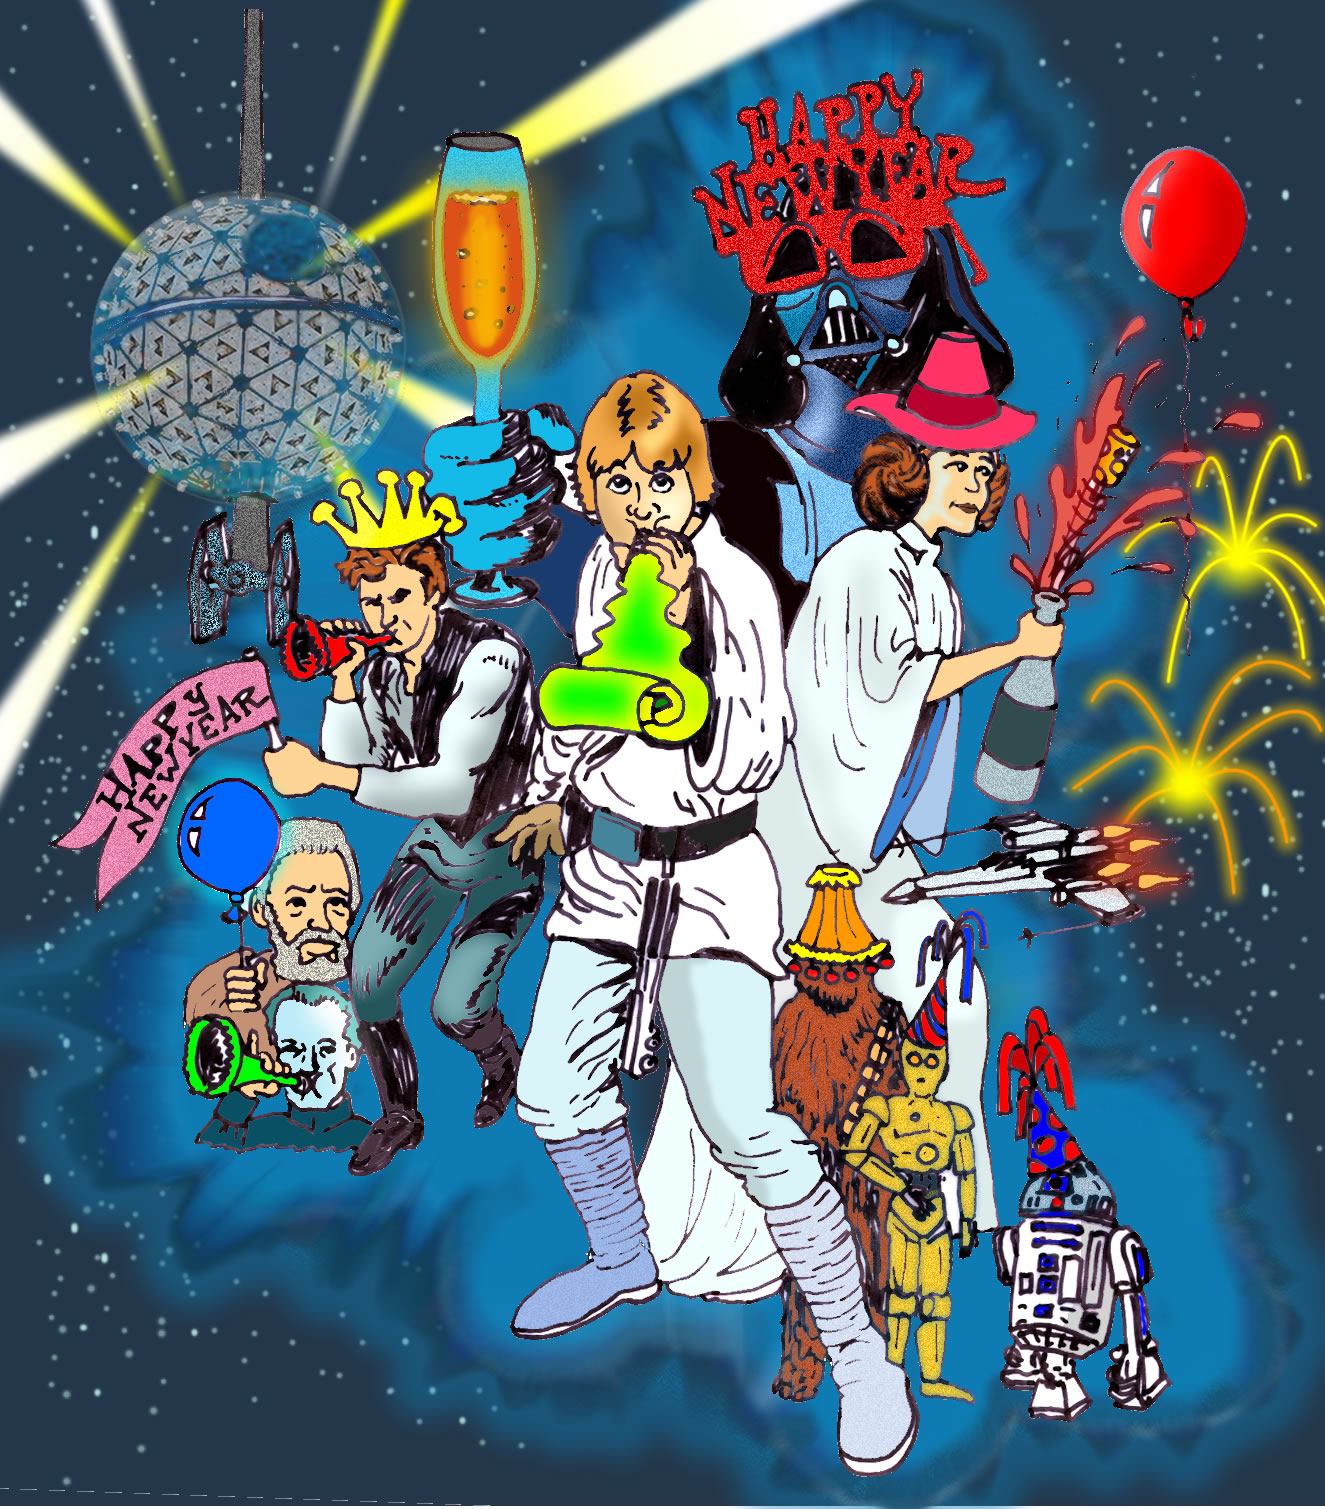 ForceCast.net: Ring In 2013 With Our Death Star New Year's ...